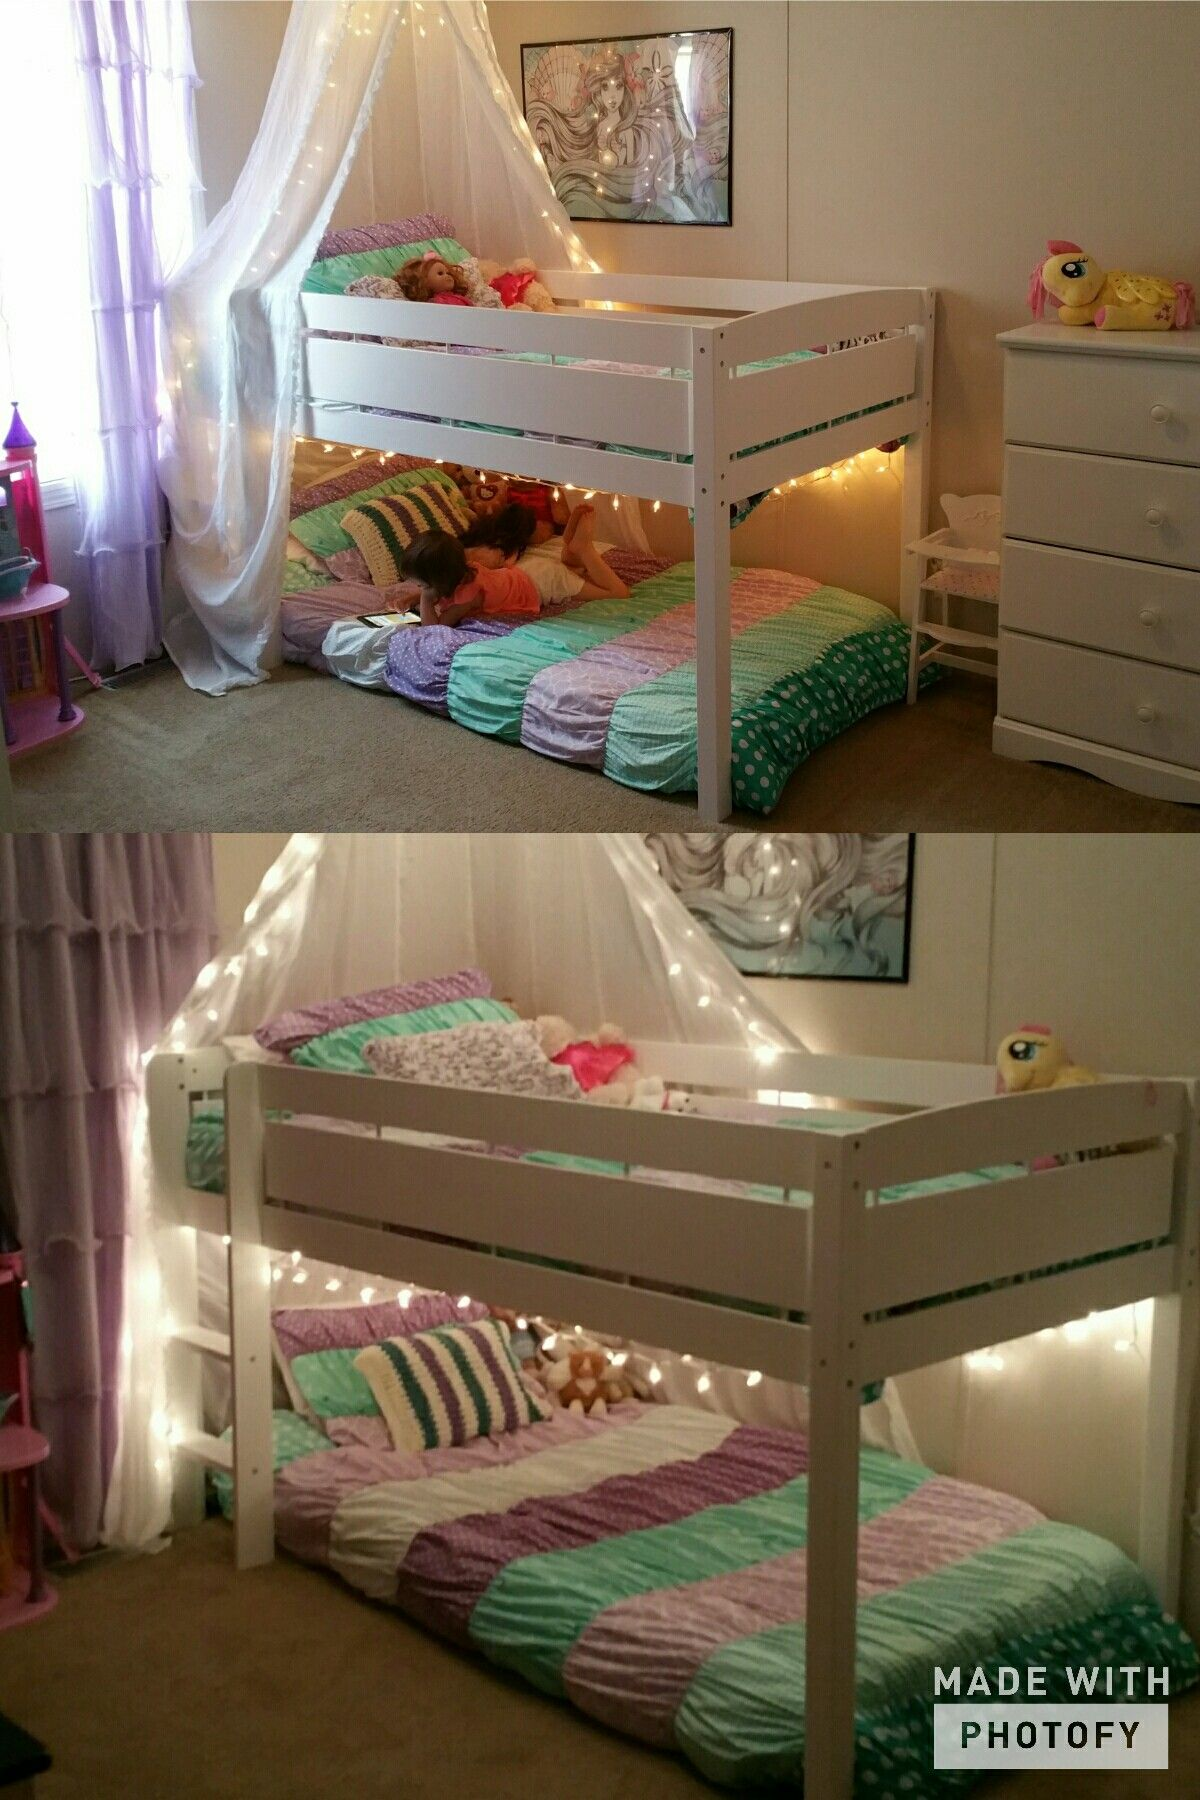 Kids Bedroom Beds for a princess mermaid theme bedroom. beds are great for small